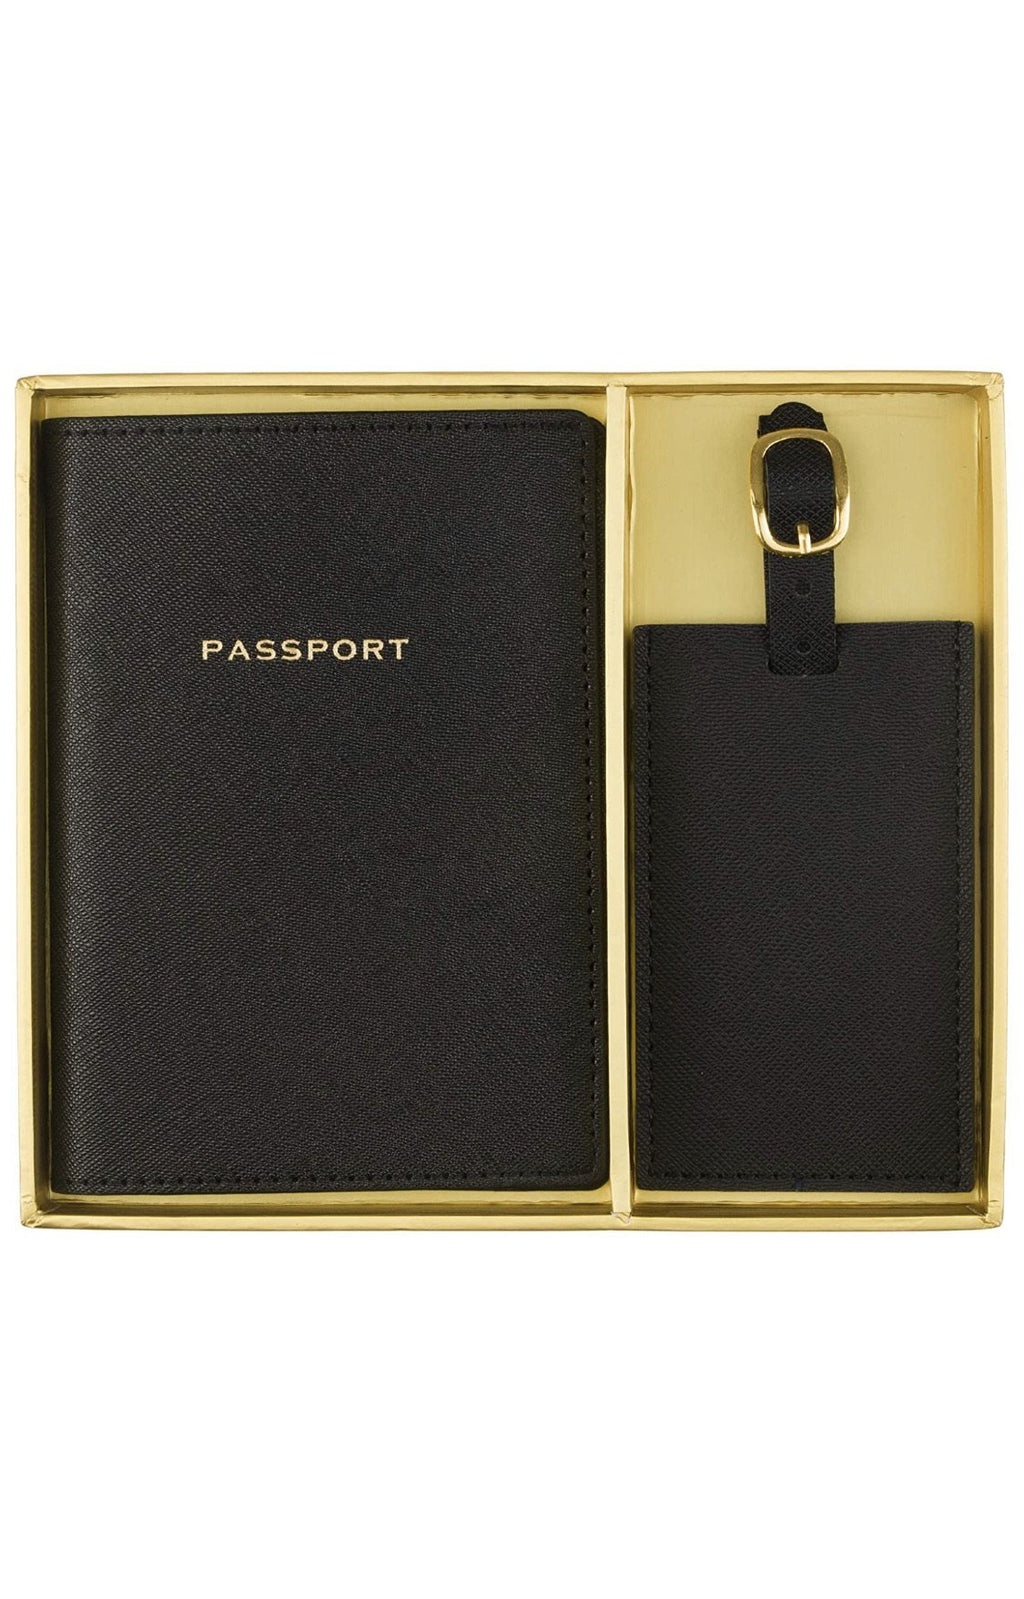 Passport Holder & Luggage Tag Gift Set - Local Pick Up & Fast Delivery - My Travel Shop